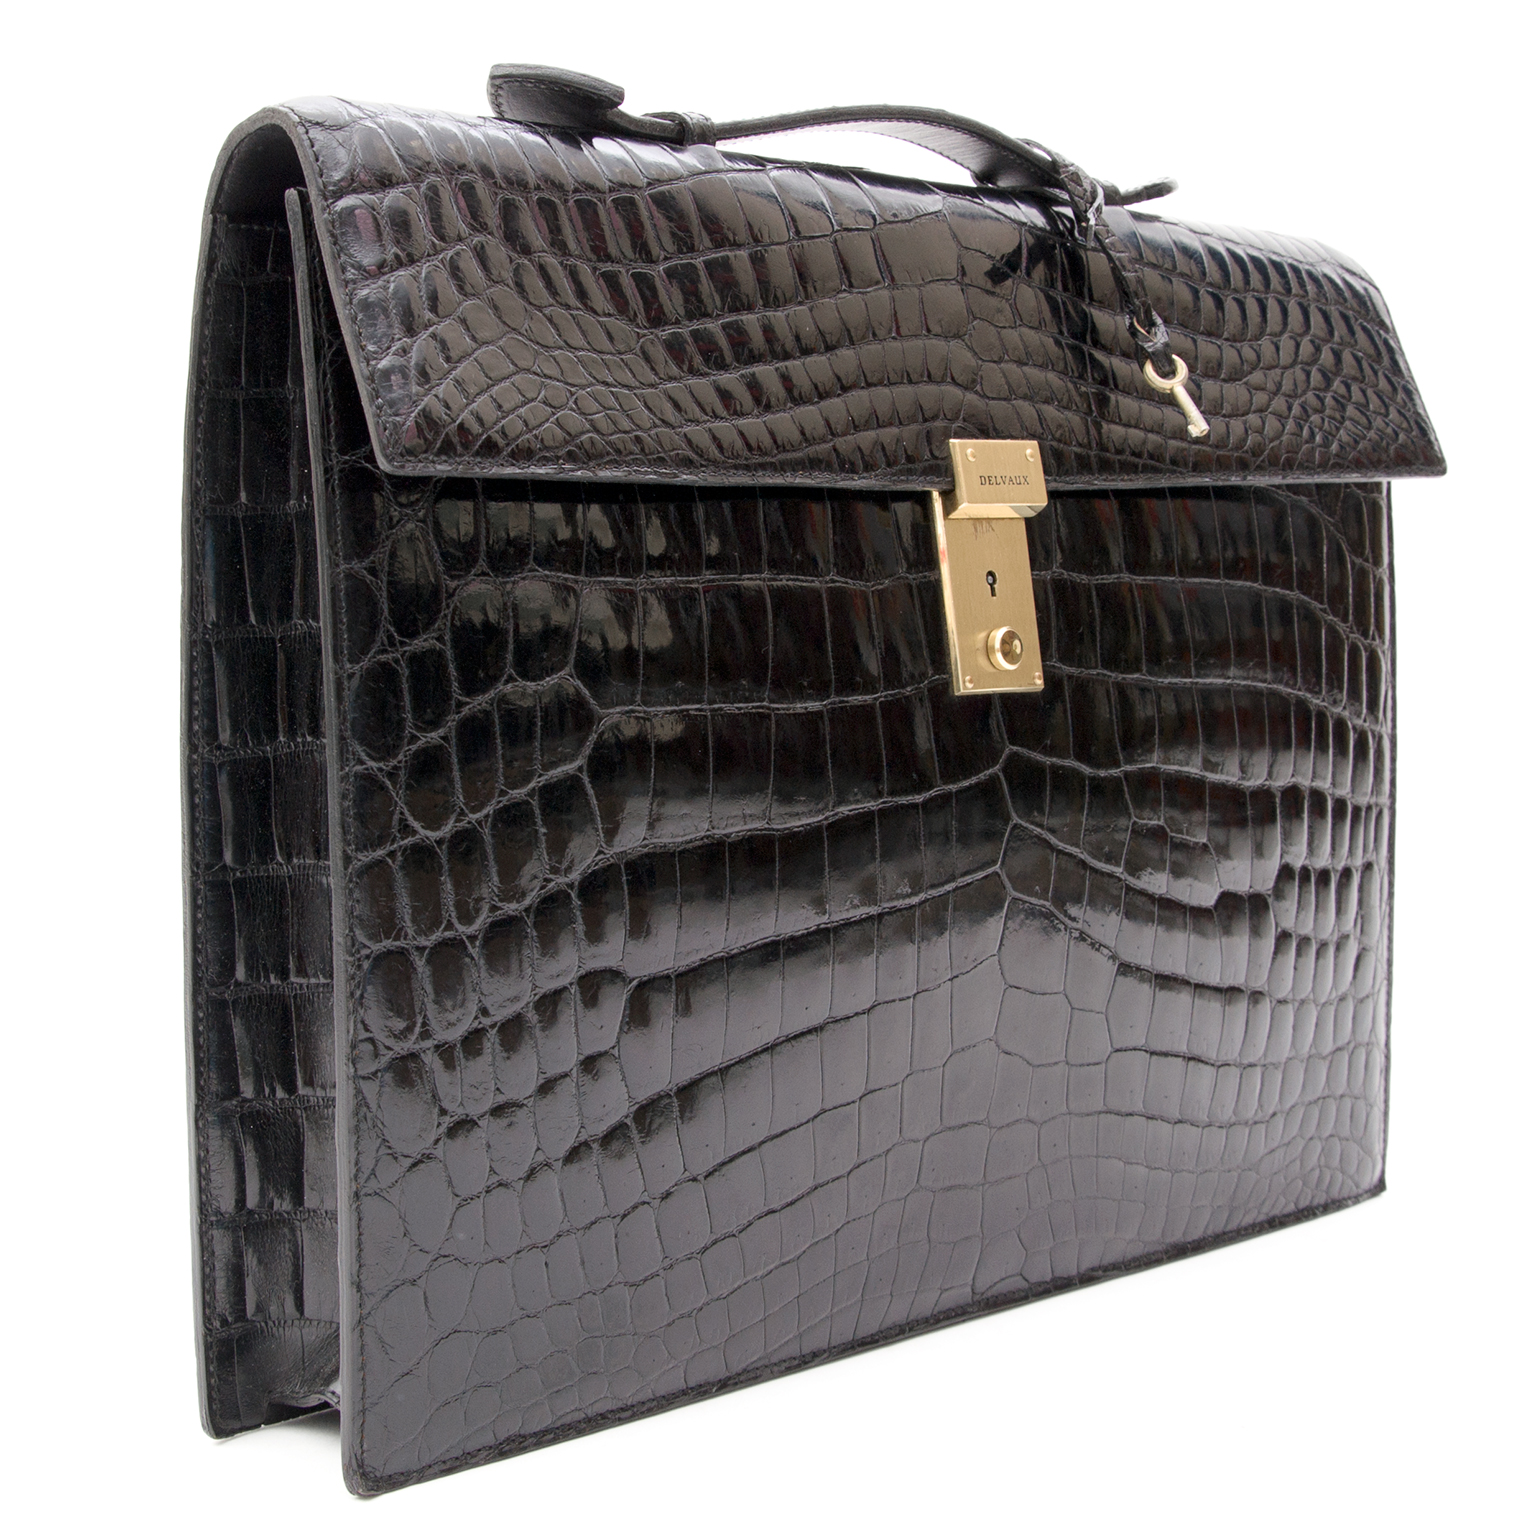 Delvaux Croco black briefcase, For designer brands such as Louis Vuitton, Hermes, Chanel, Delvaux and many more, visit the online platform Labellov. The website offers a safe and secure platform to sell and buy new or preloved luxurious bags.